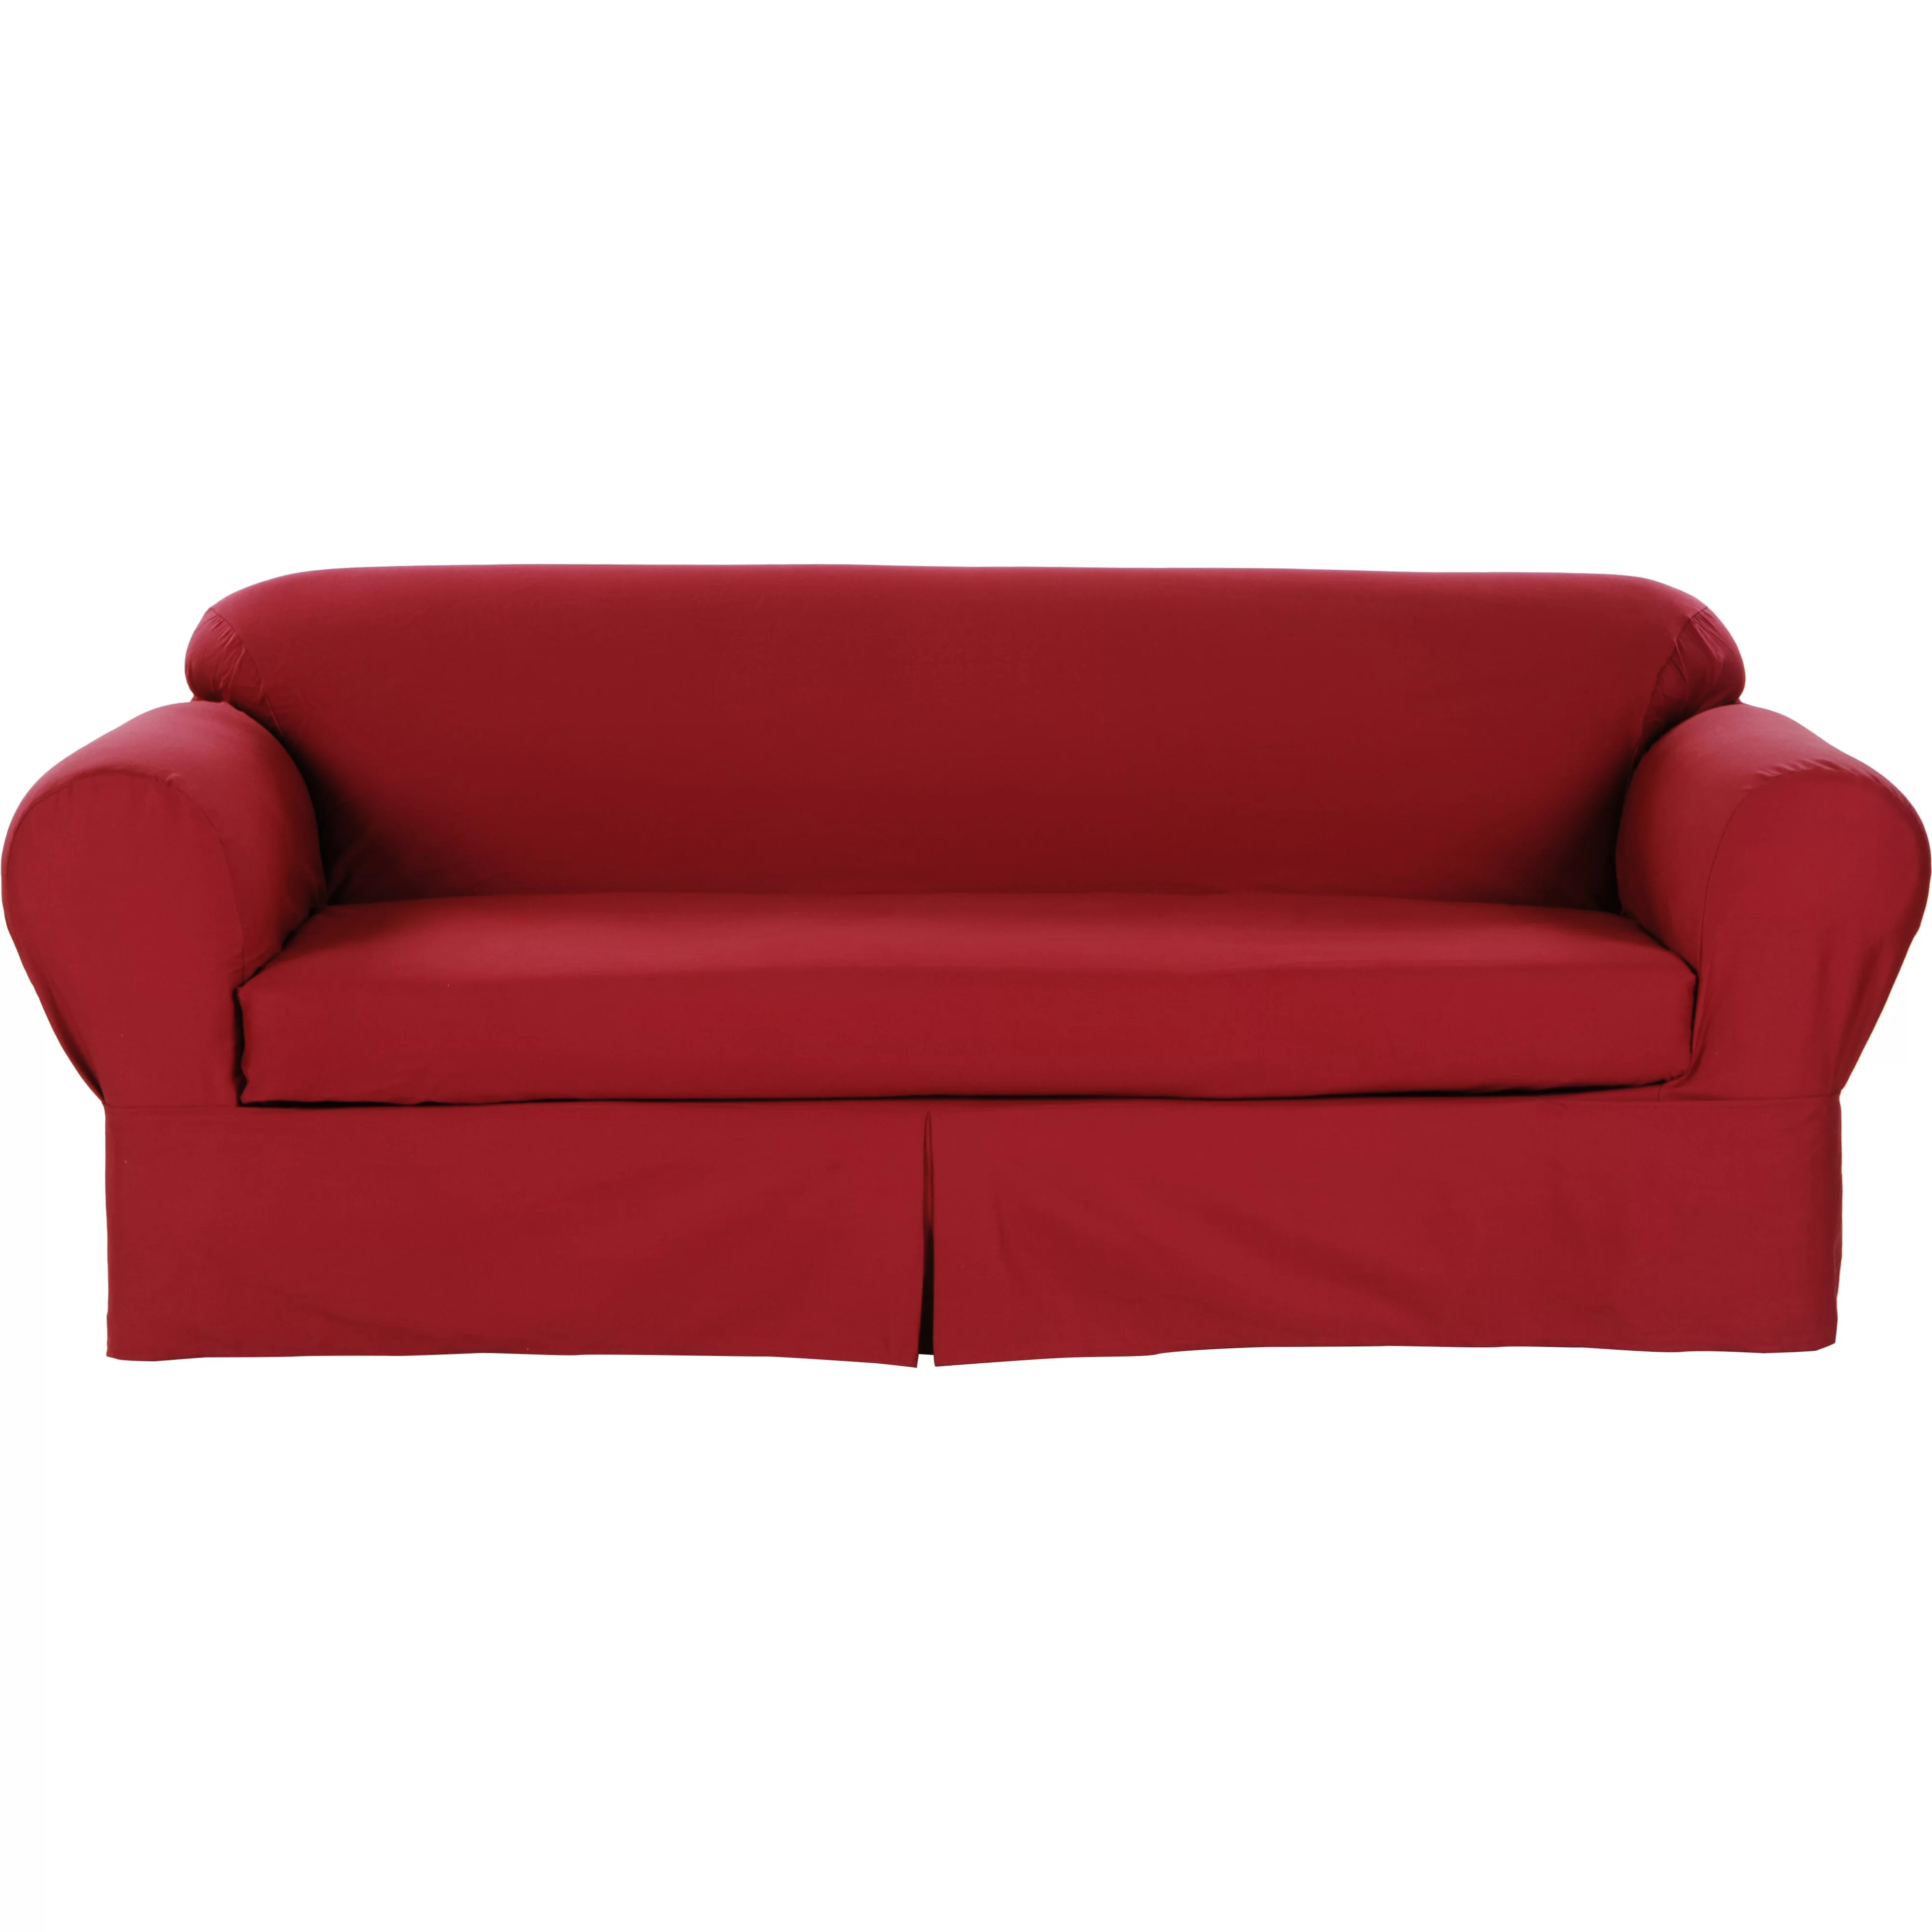 wayfair sofa covers single seater air with footrest darby home co brushed twill slipcover and reviews